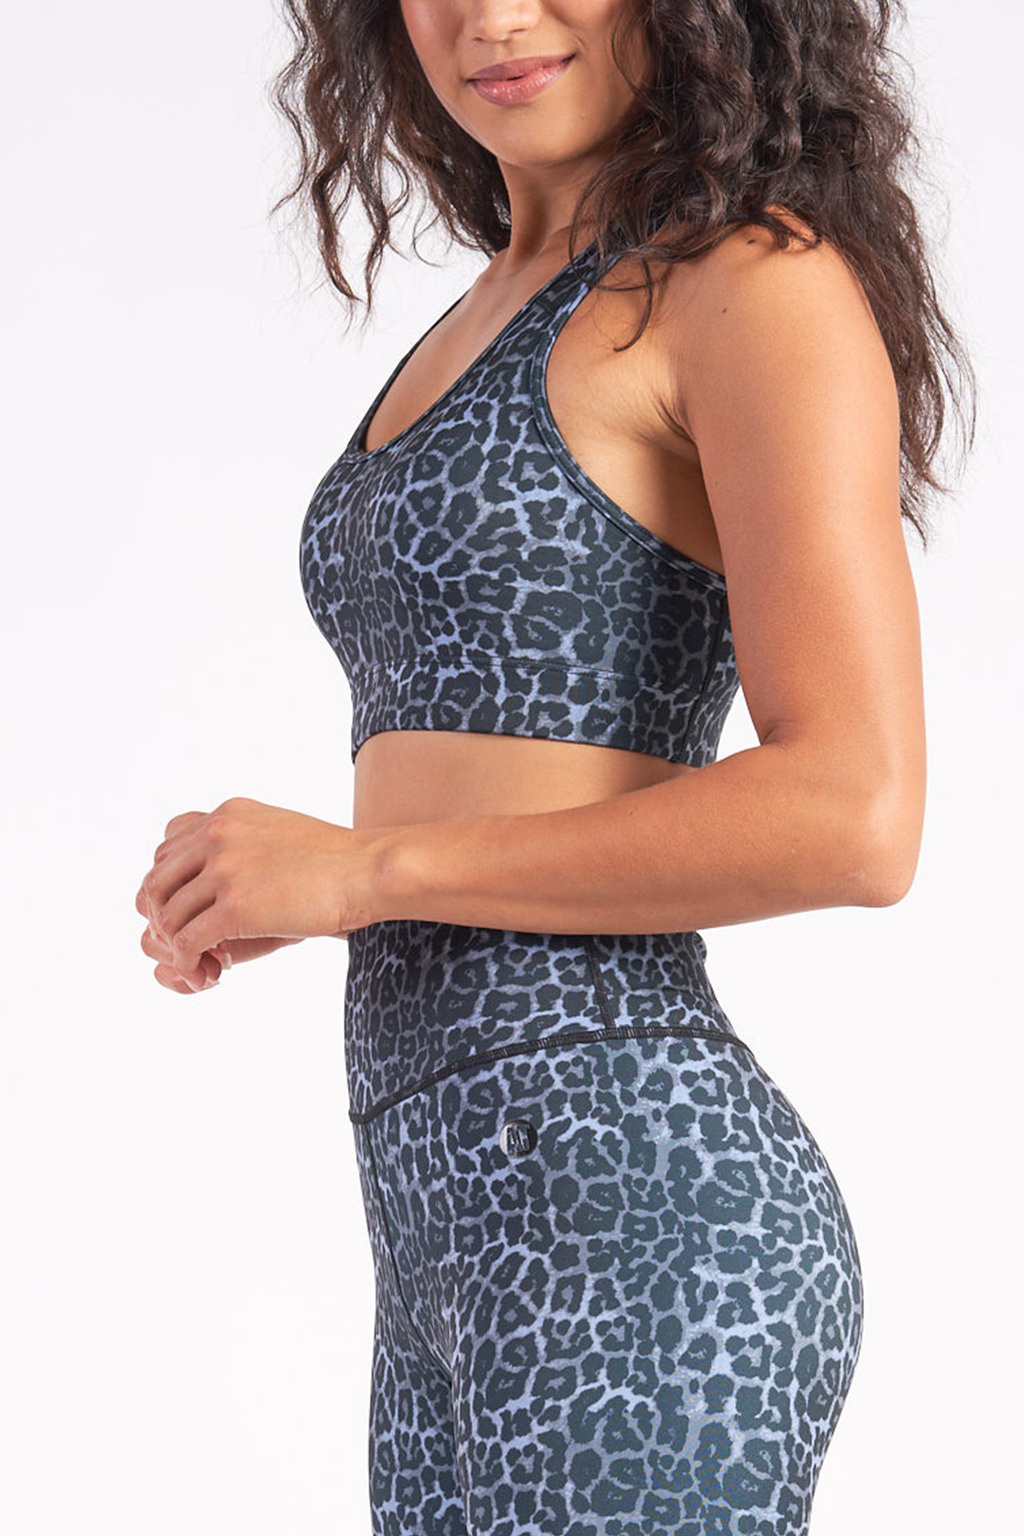 racerback-sports-crop-grey-leopard-small-side